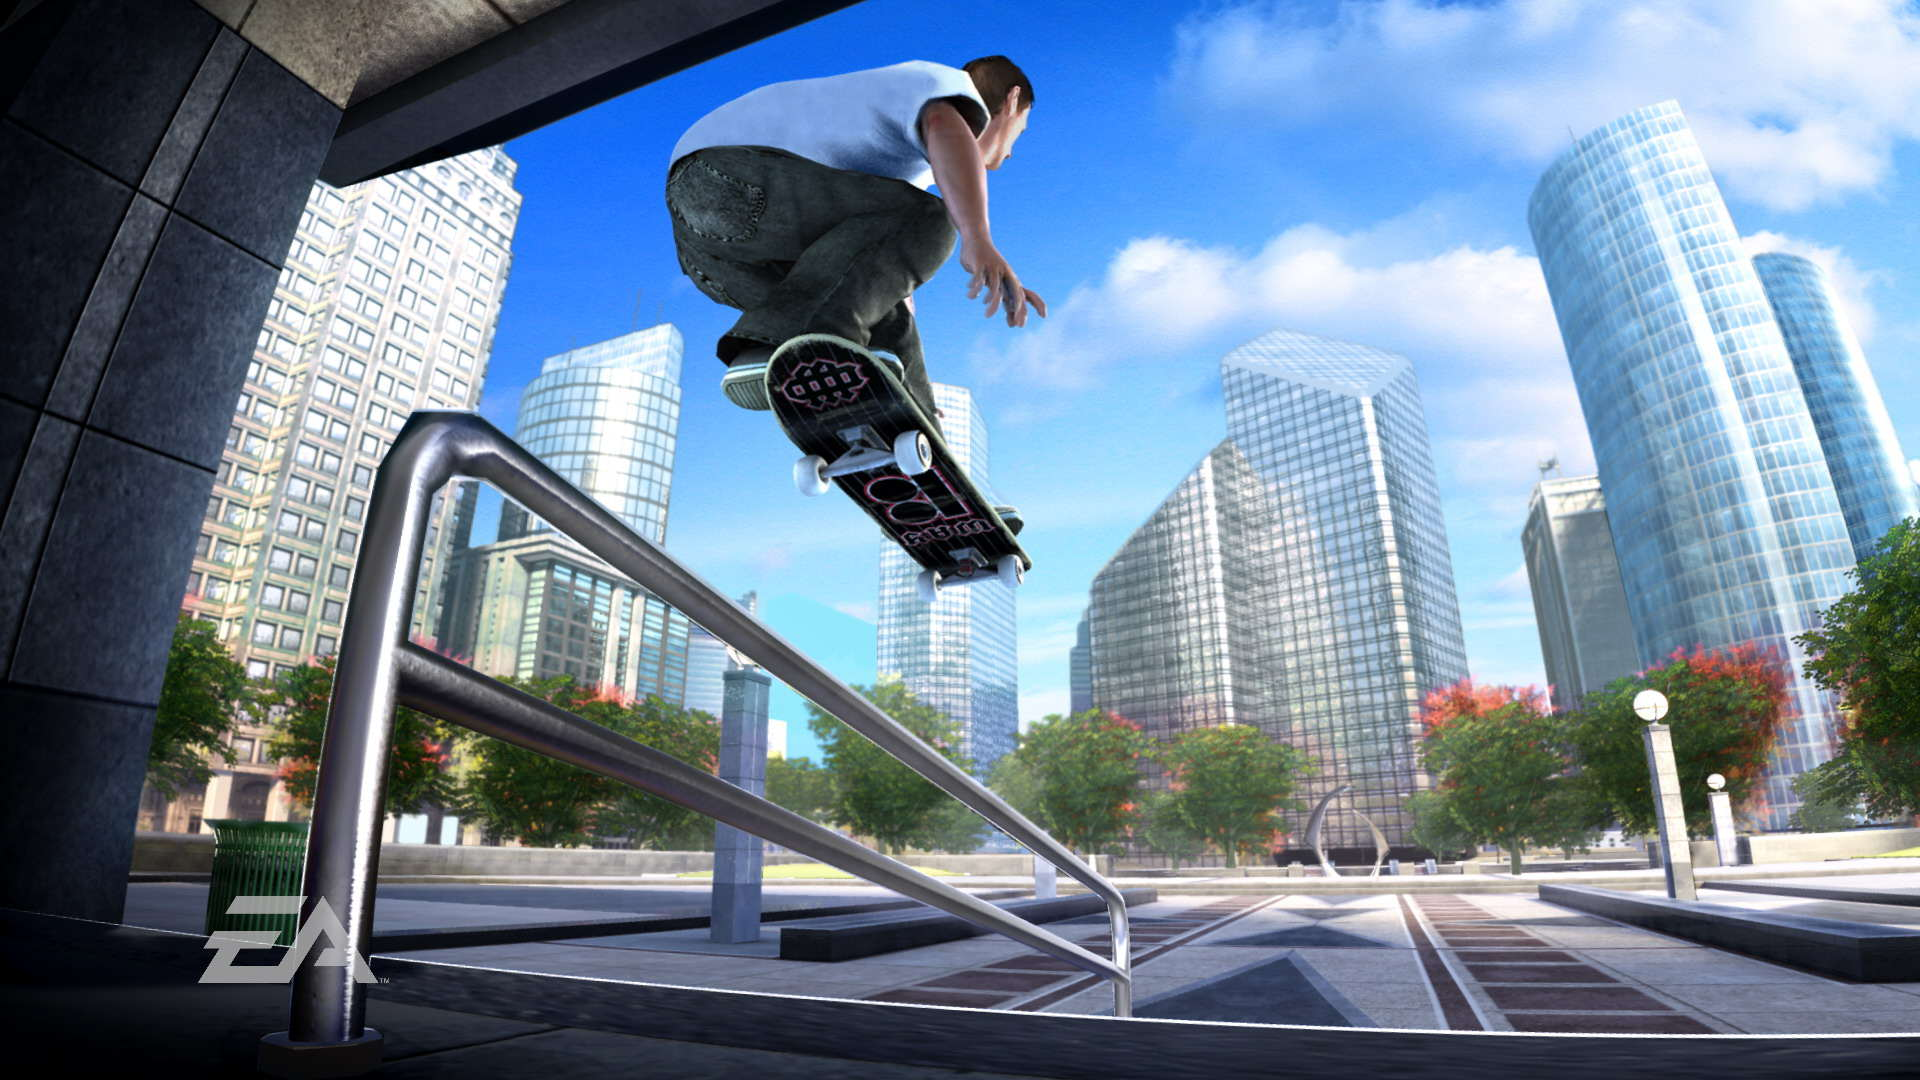 EA community manager drops Skate 4 tease